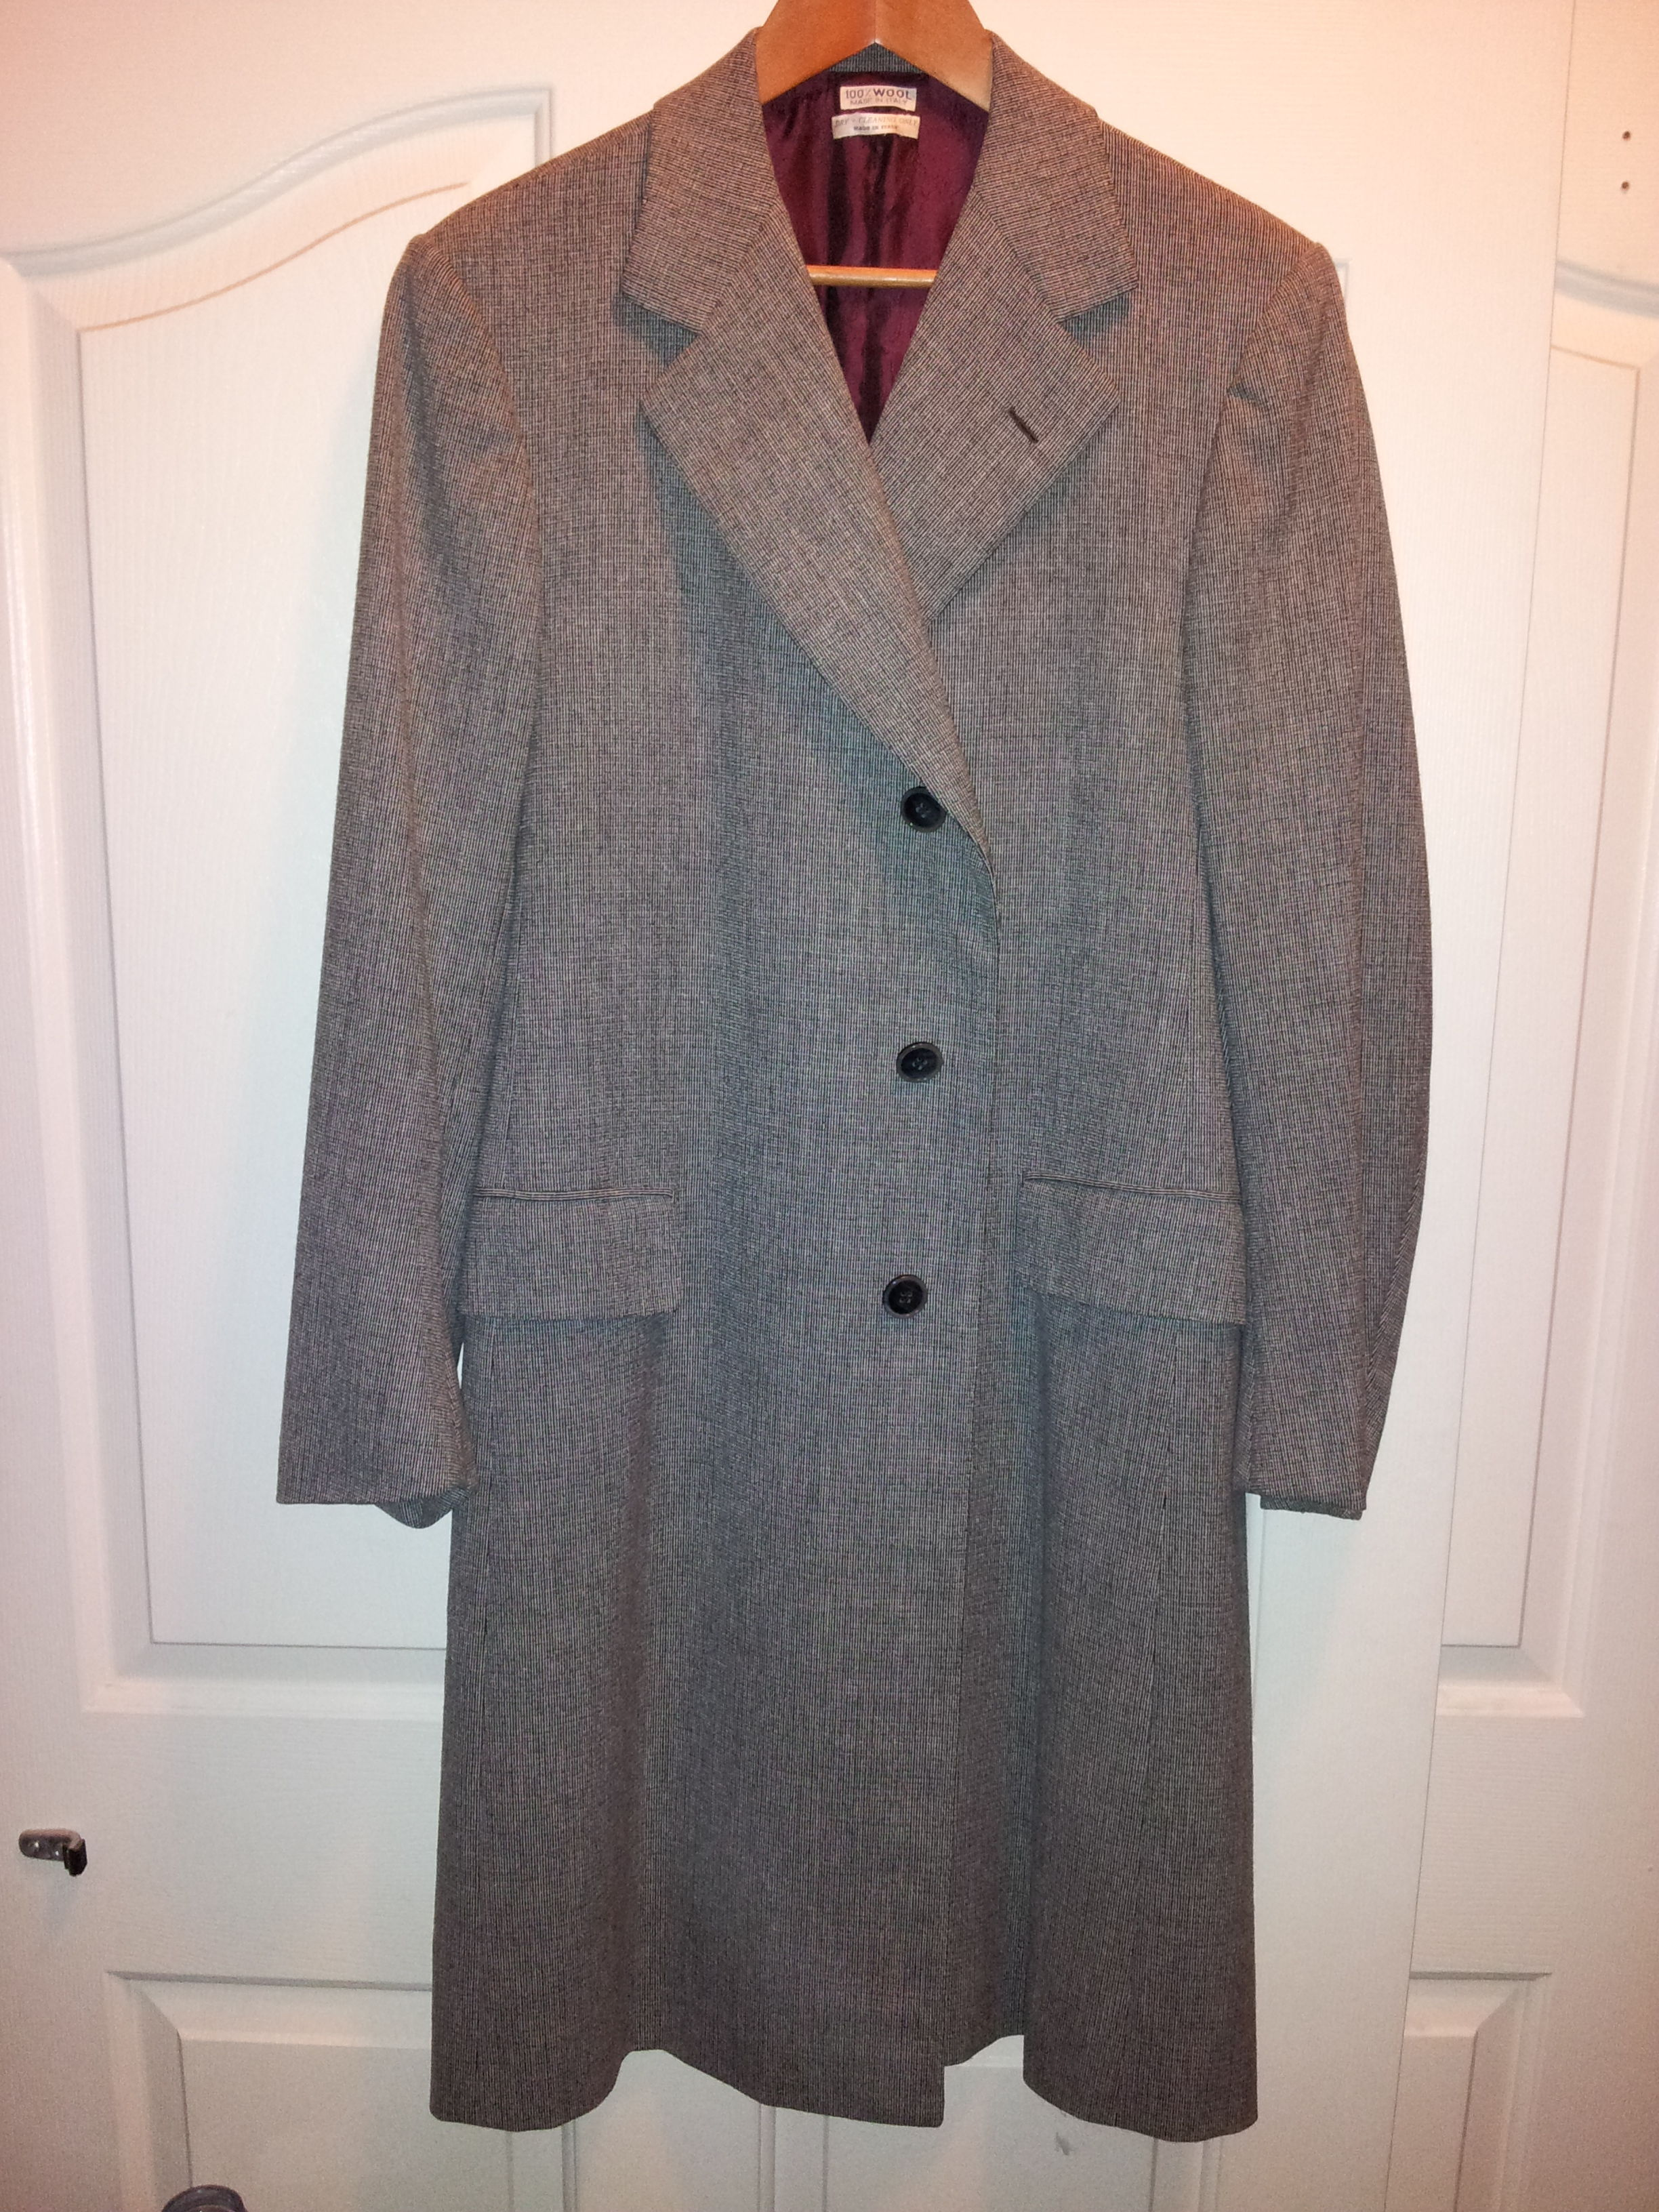 Good day My name is Ernesto, just bought a beautiful Roman Style By Brioni Alta Moda Maschile Roma Overcoat, It has also a name of Harry Cleveland, O. Please would love to know a little more about it. Also sending you some pictures. Thanks.